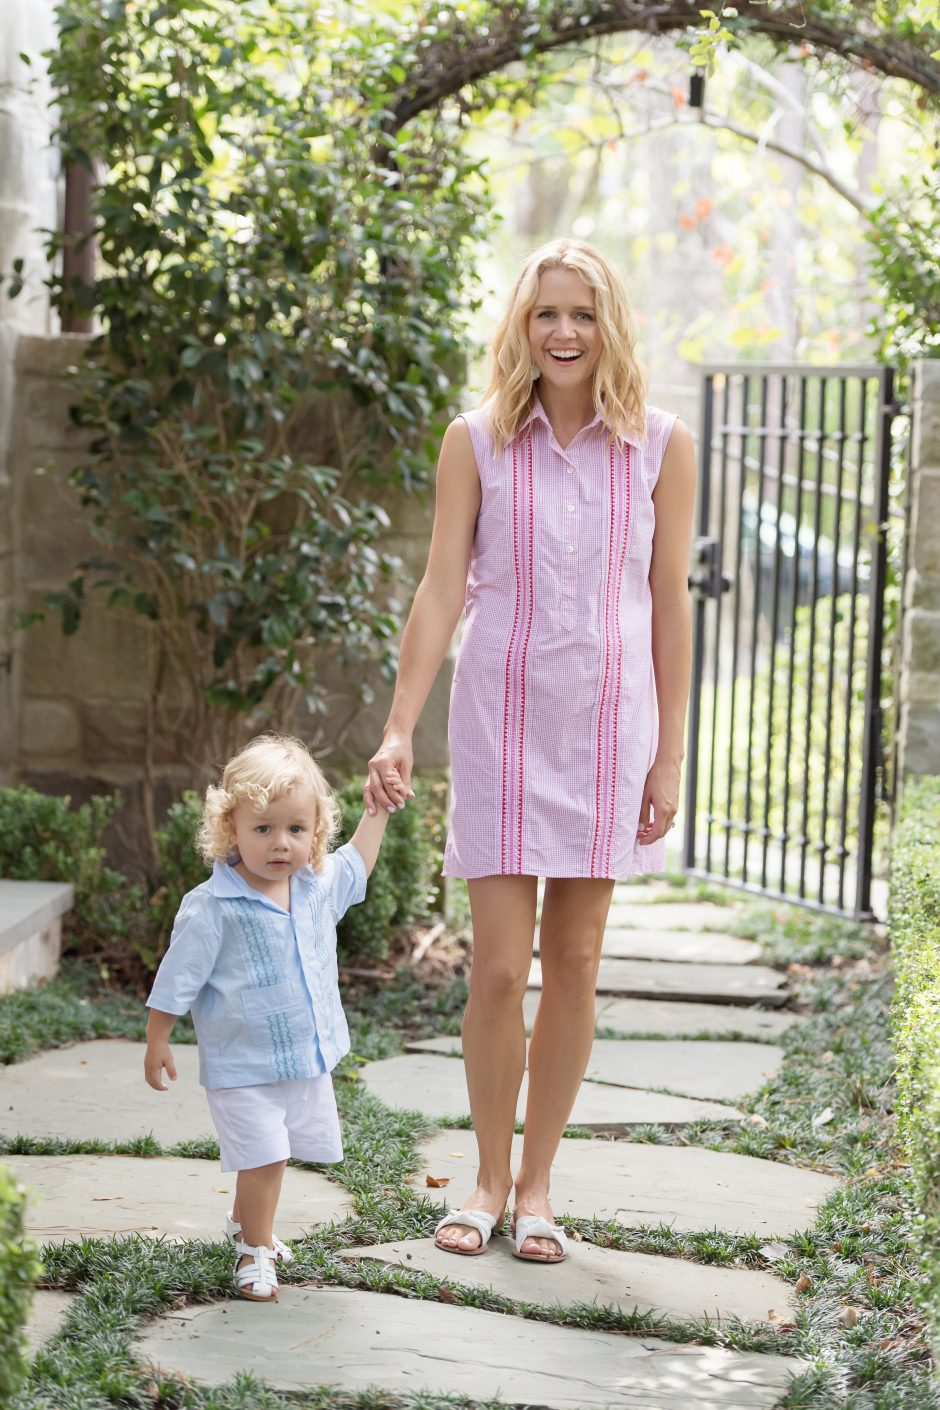 L. Avenue teams up with Paris Texas Apparel Co. to bring you the perfect mom on the go dress